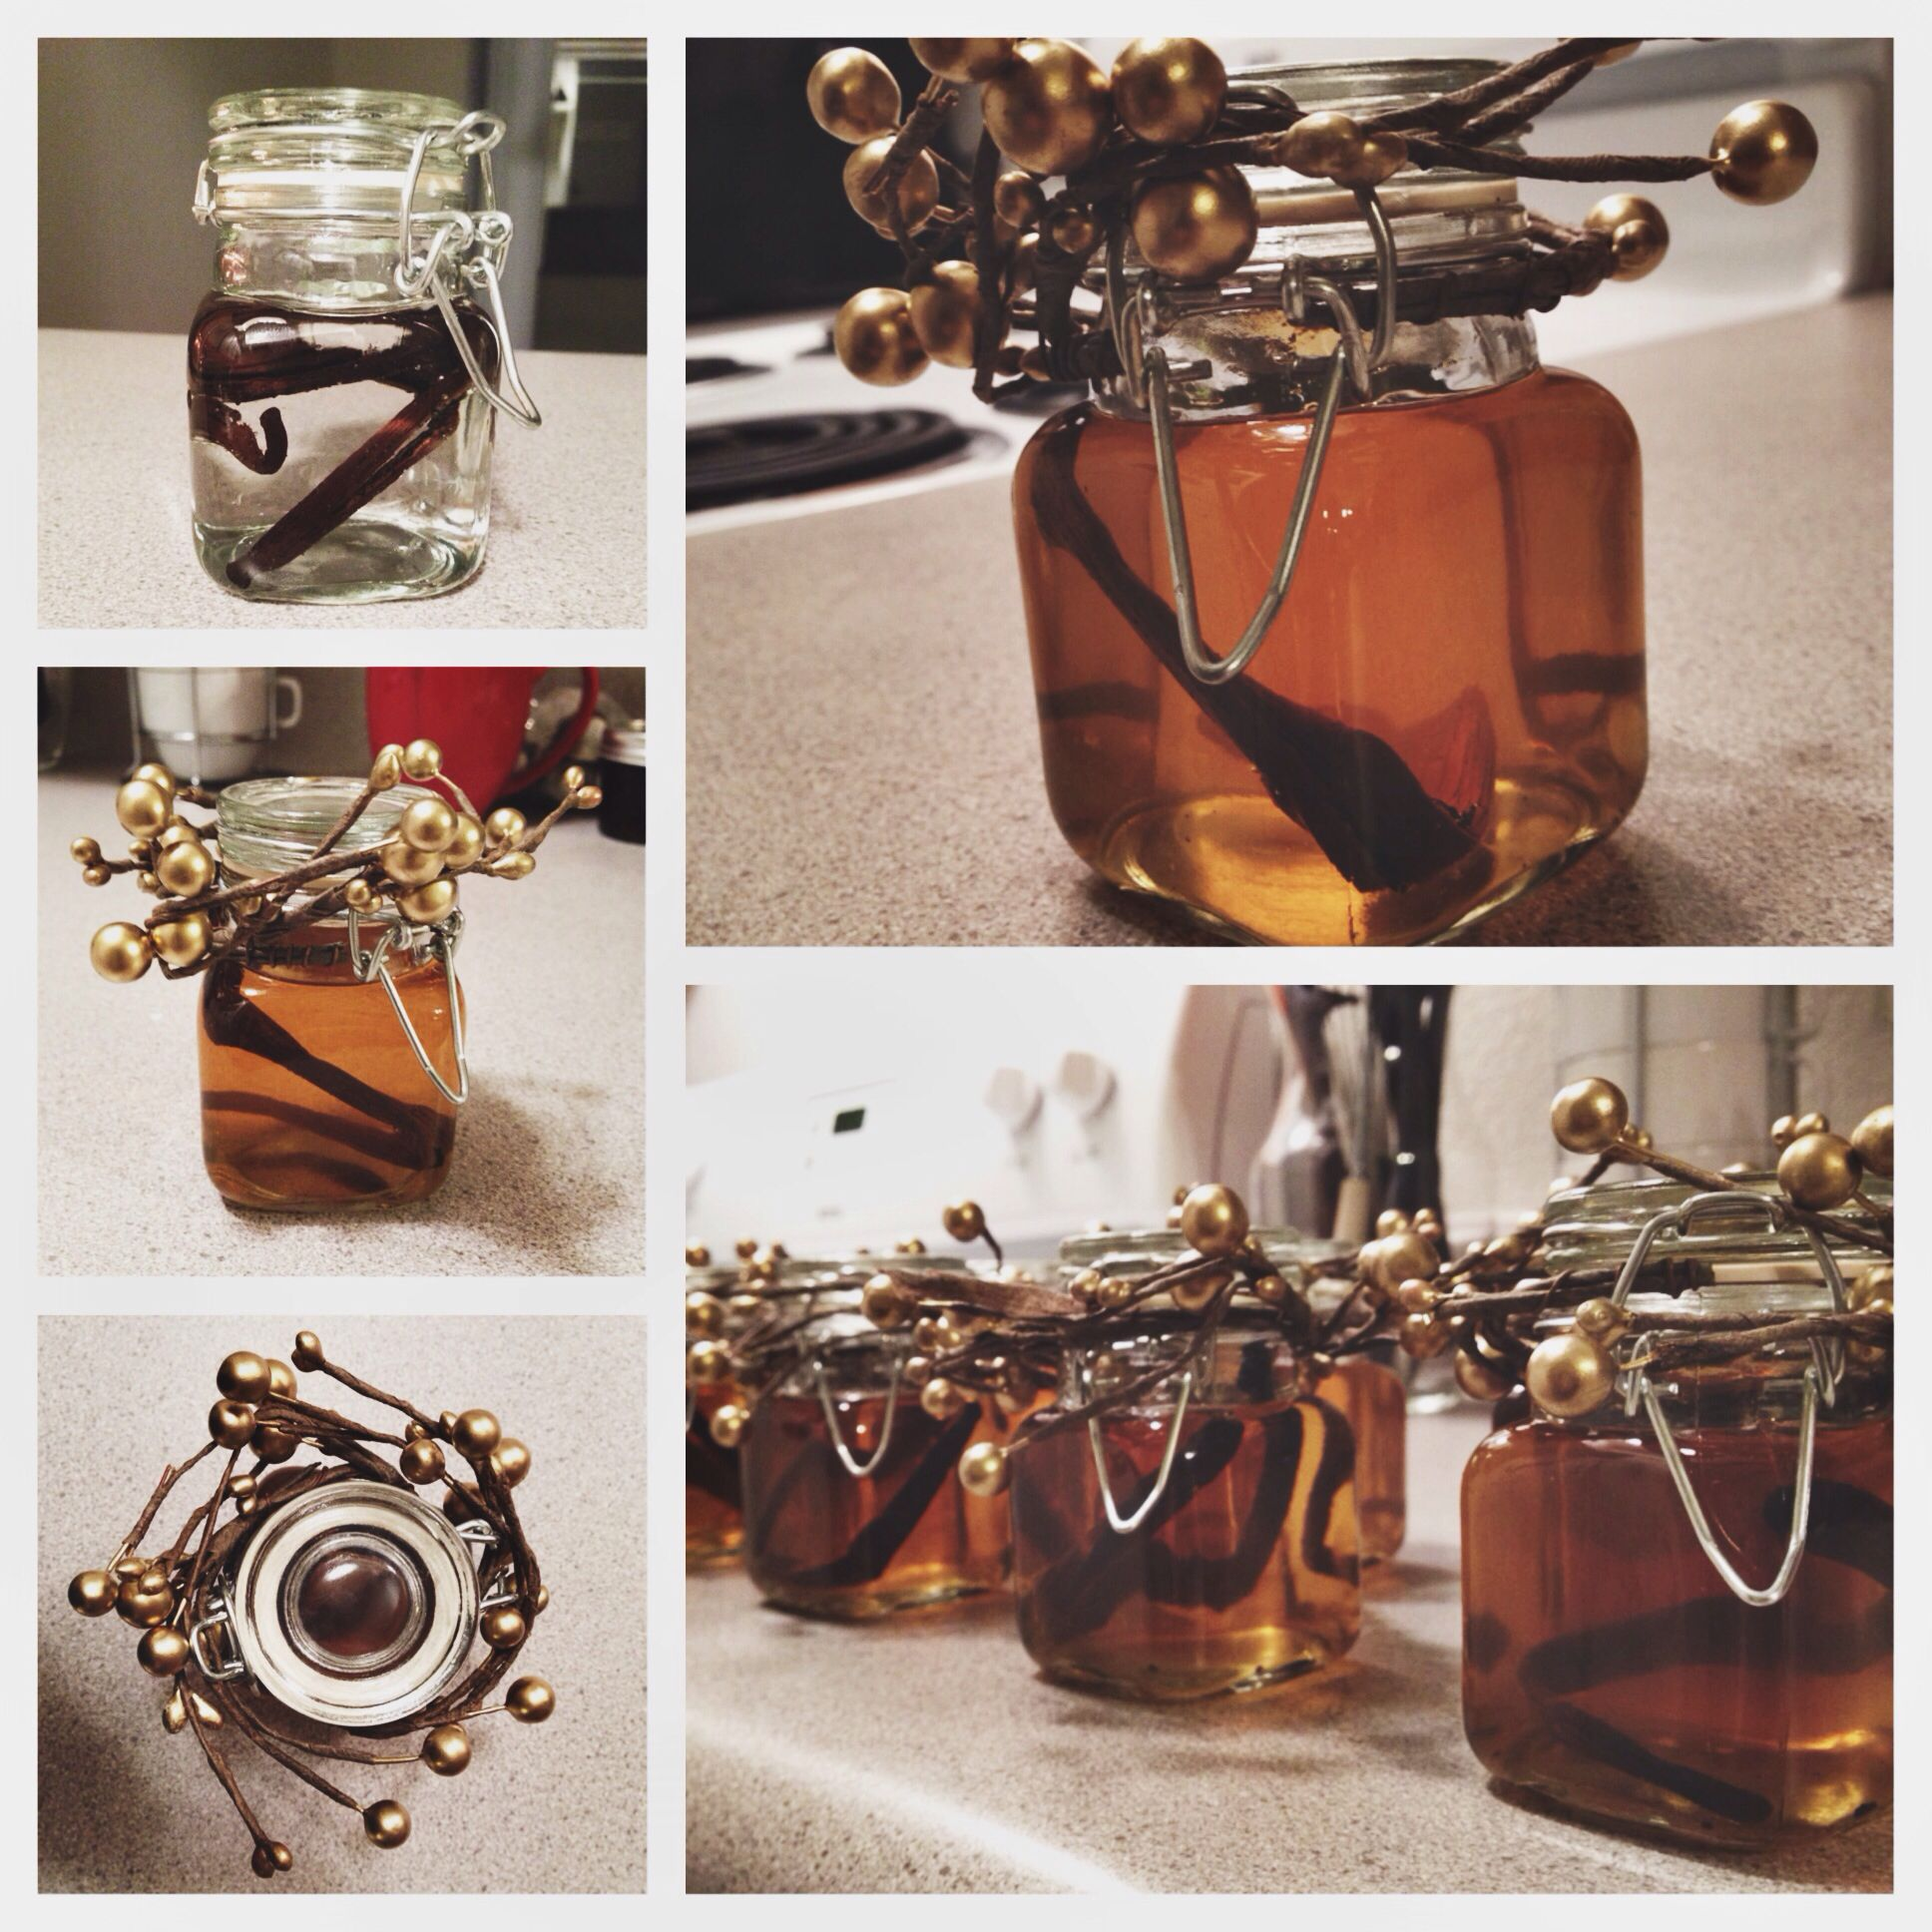 Homemade vanilla extract for office gifts